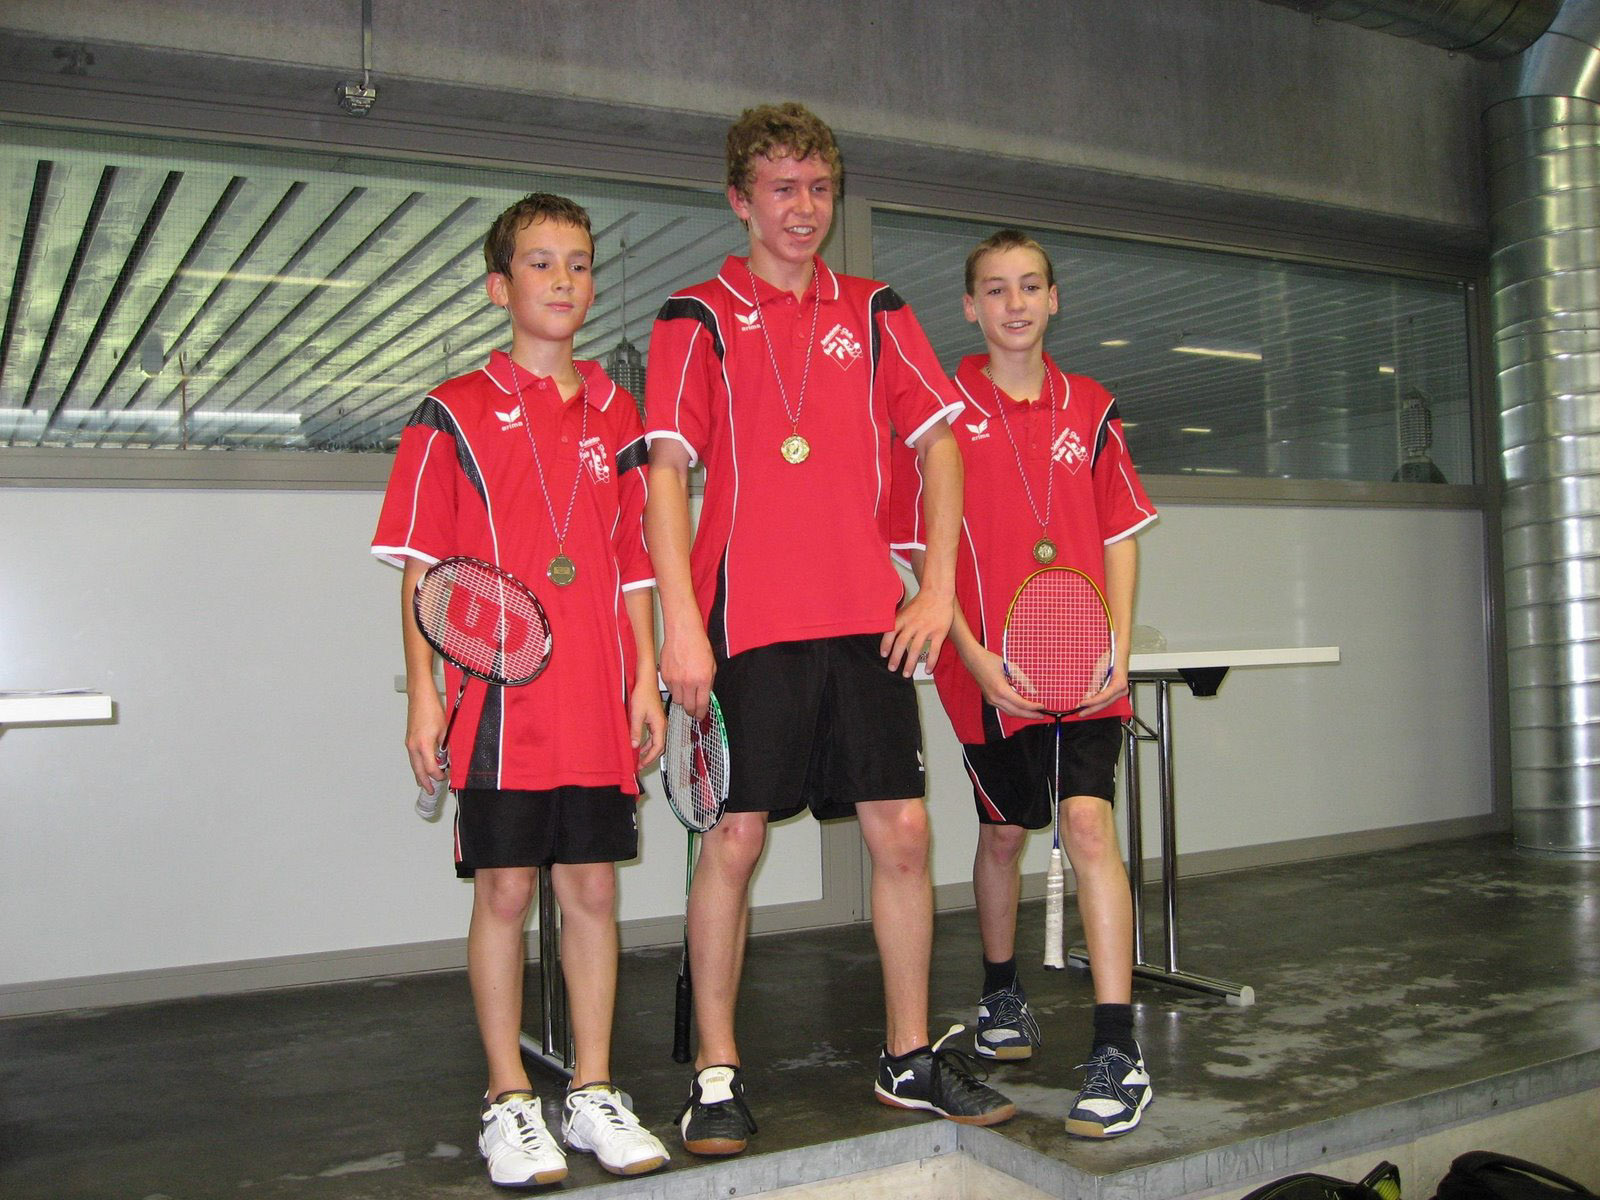 Circuit juniors Morat 2007